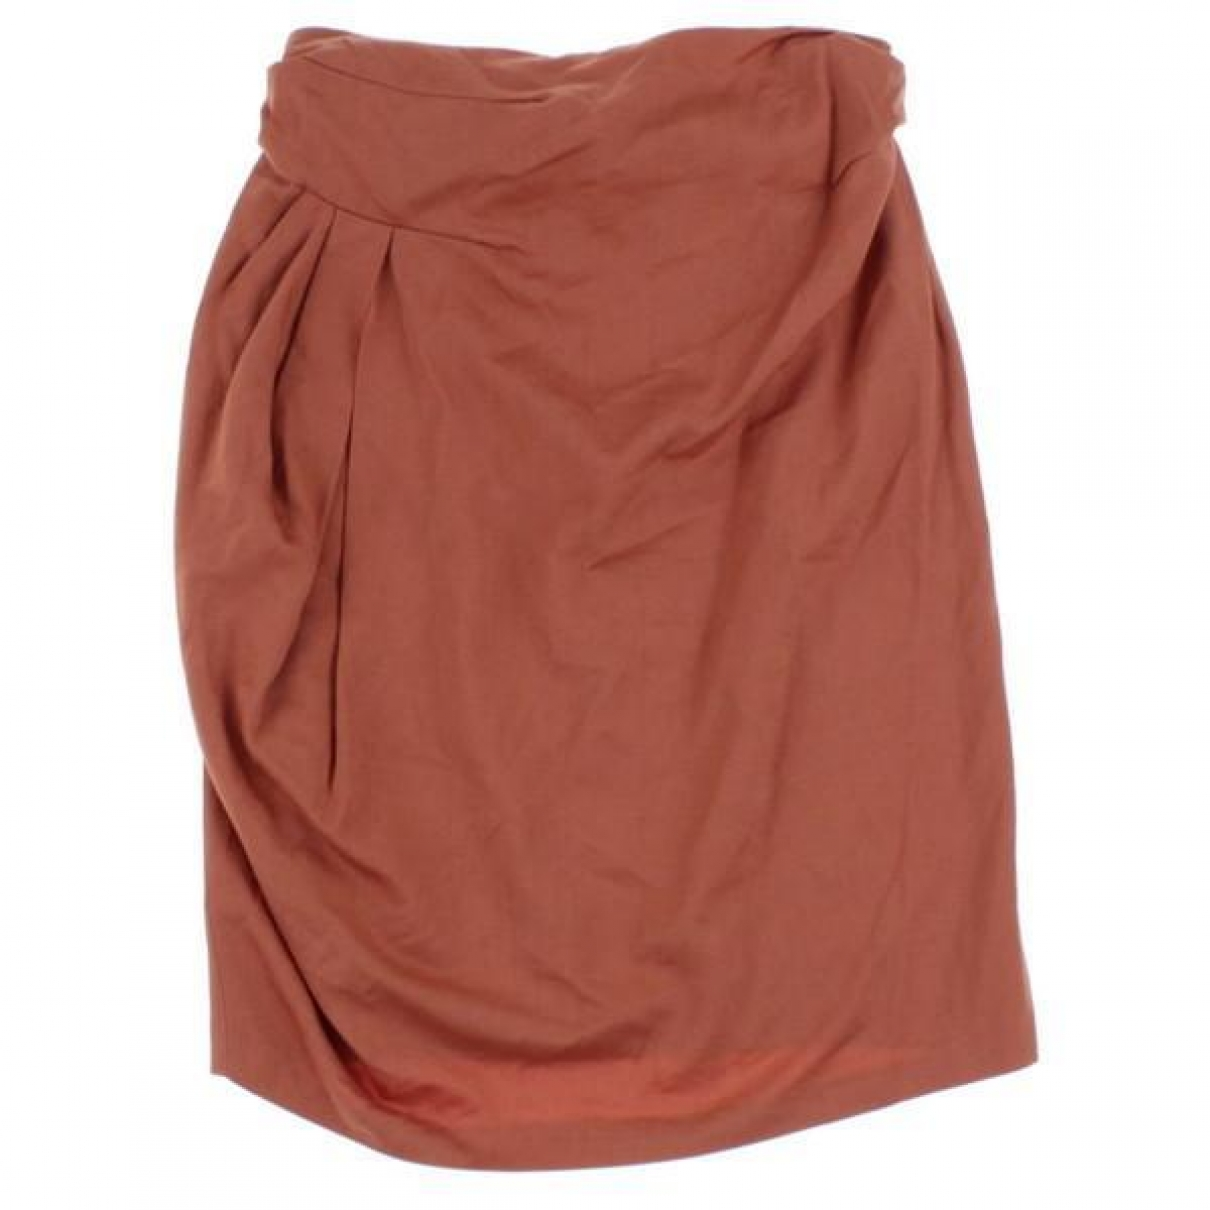 Dries Van Noten \N Orange skirt for Women 38 FR